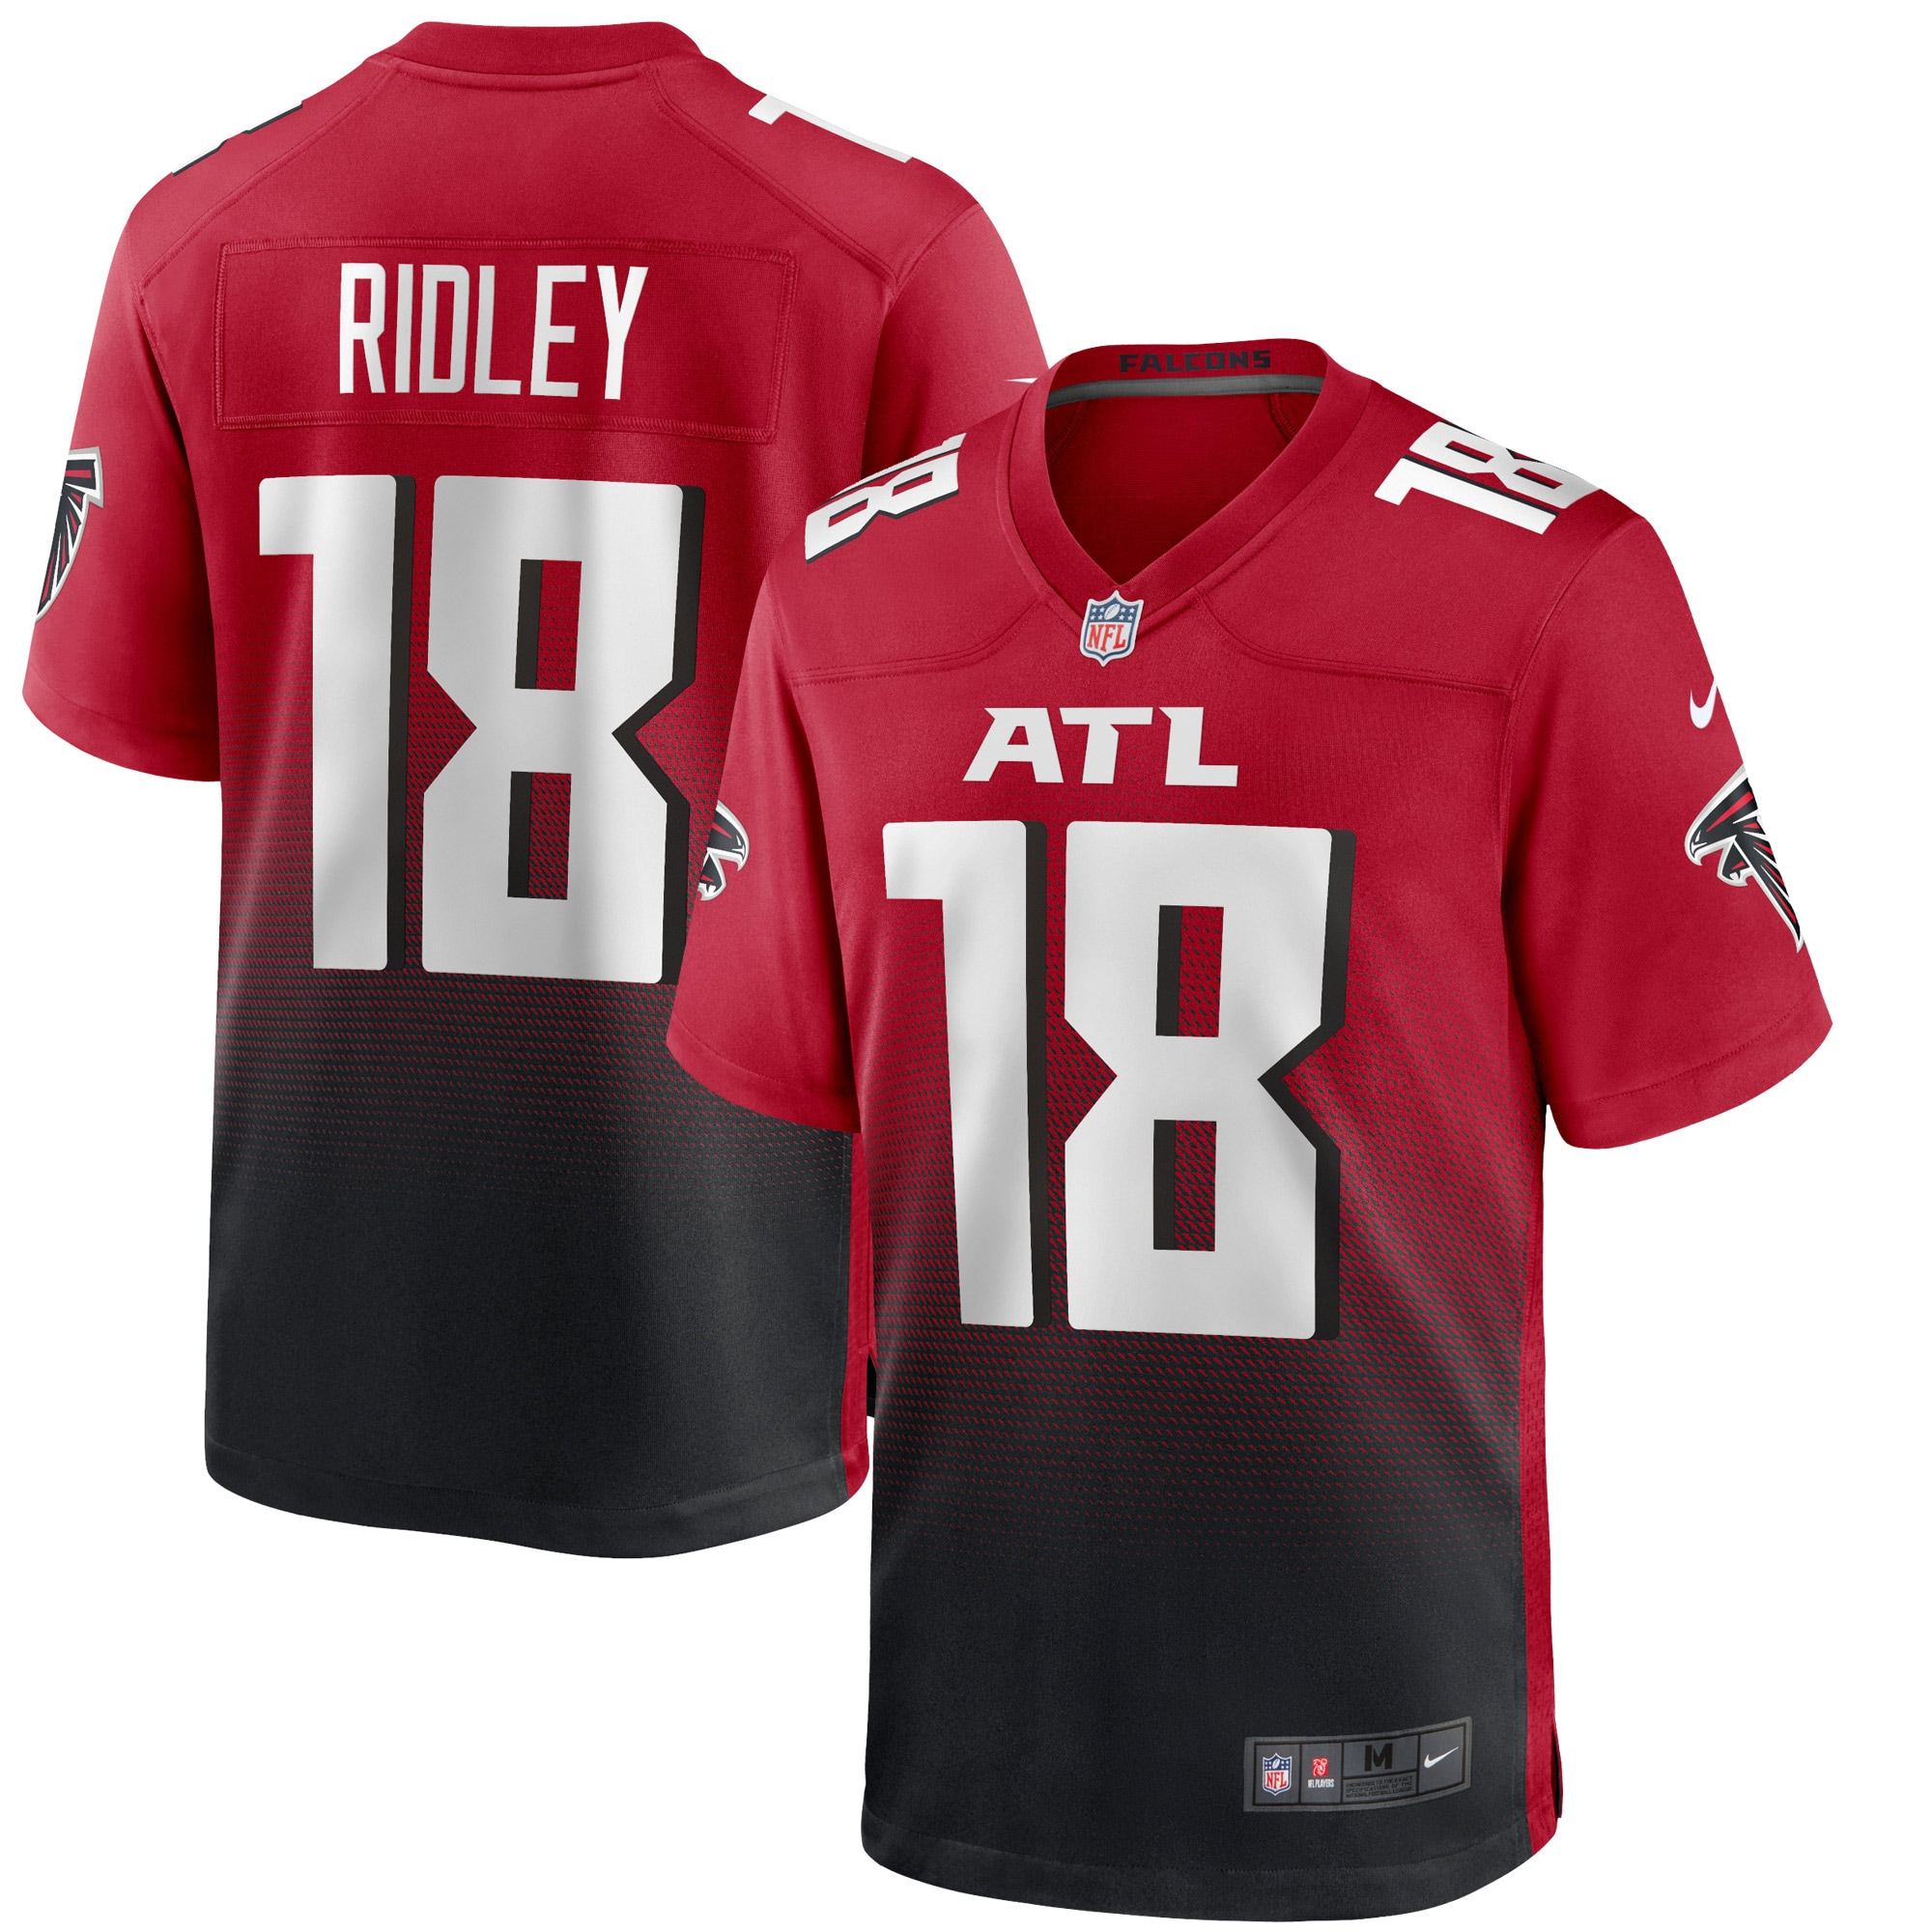 Calvin Ridley Atlanta Falcons Nike 2nd Alternate Game Jersey - Red